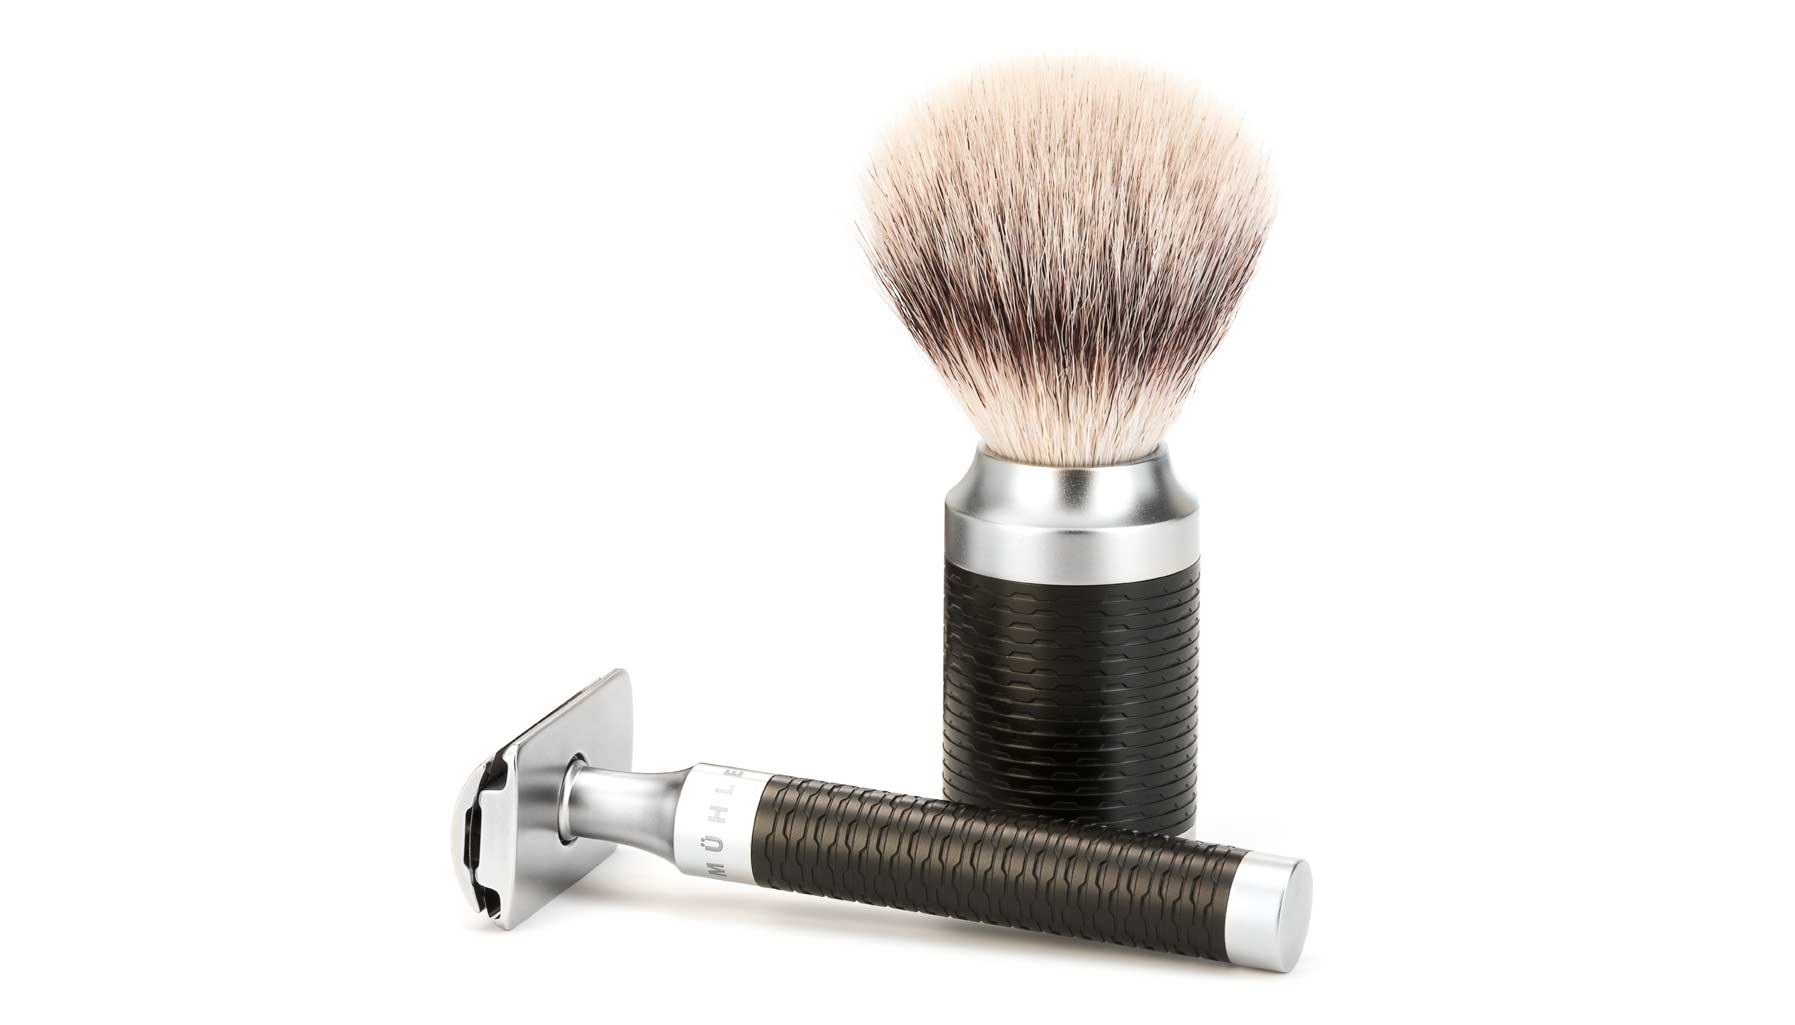 Five reasons to ditch your disposable razor for a traditional single blade